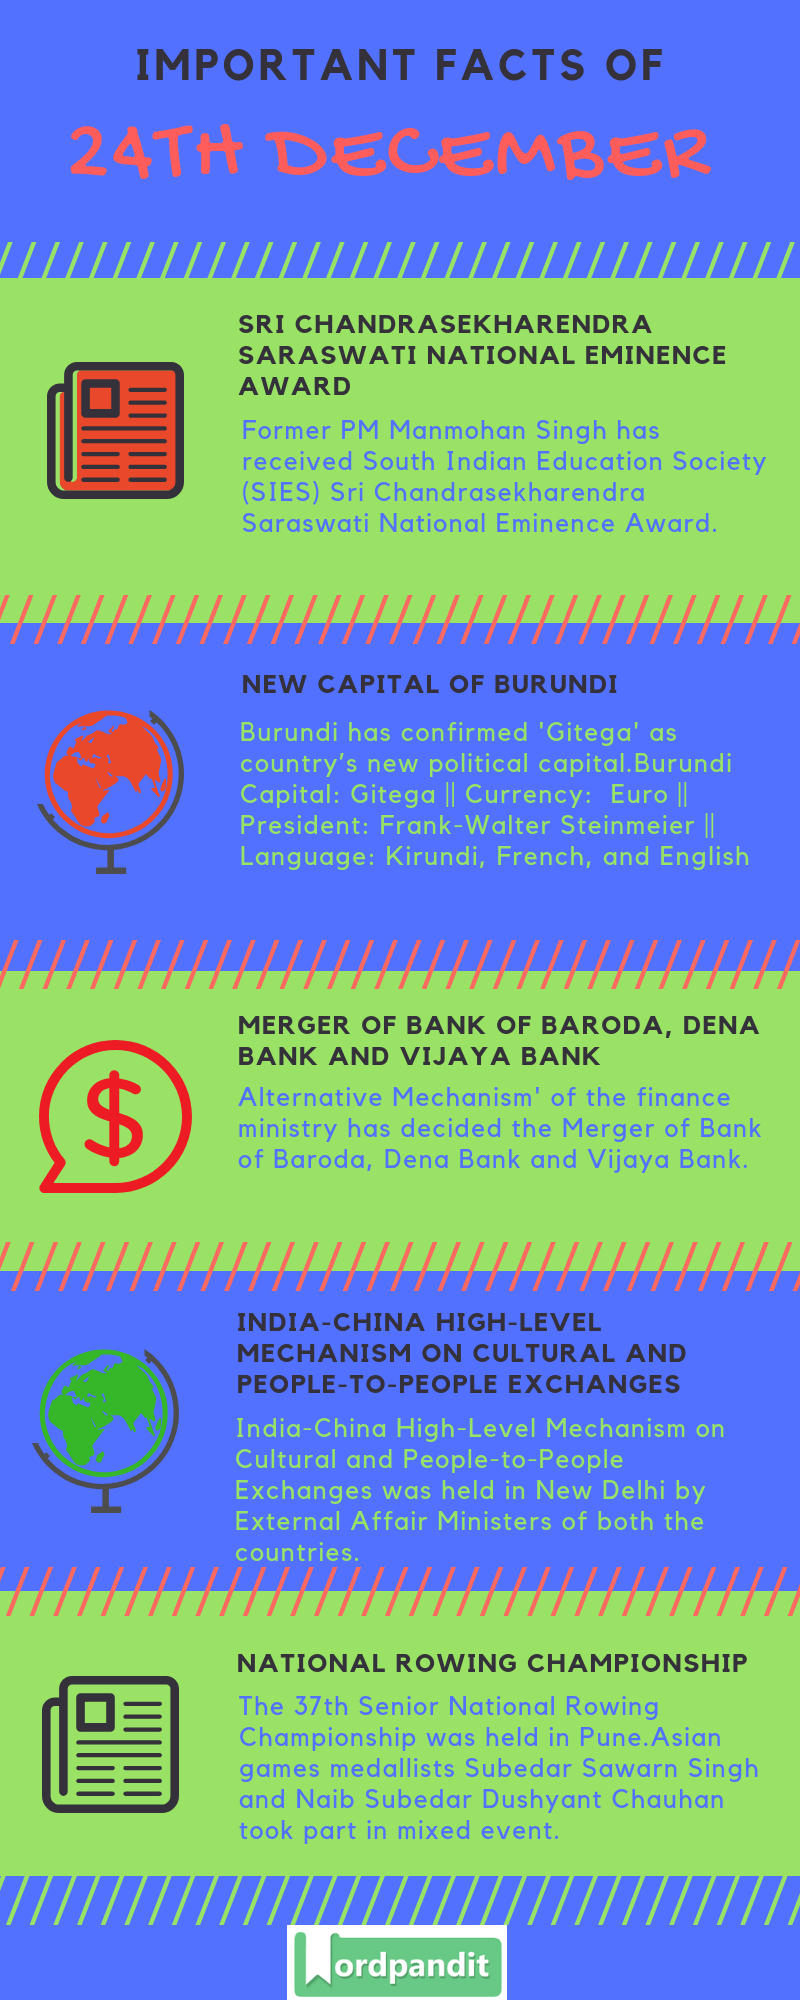 Daily Current Affairs 24 December 2018 Current Affairs Quiz 24 December 2018 Current Affairs Infographic